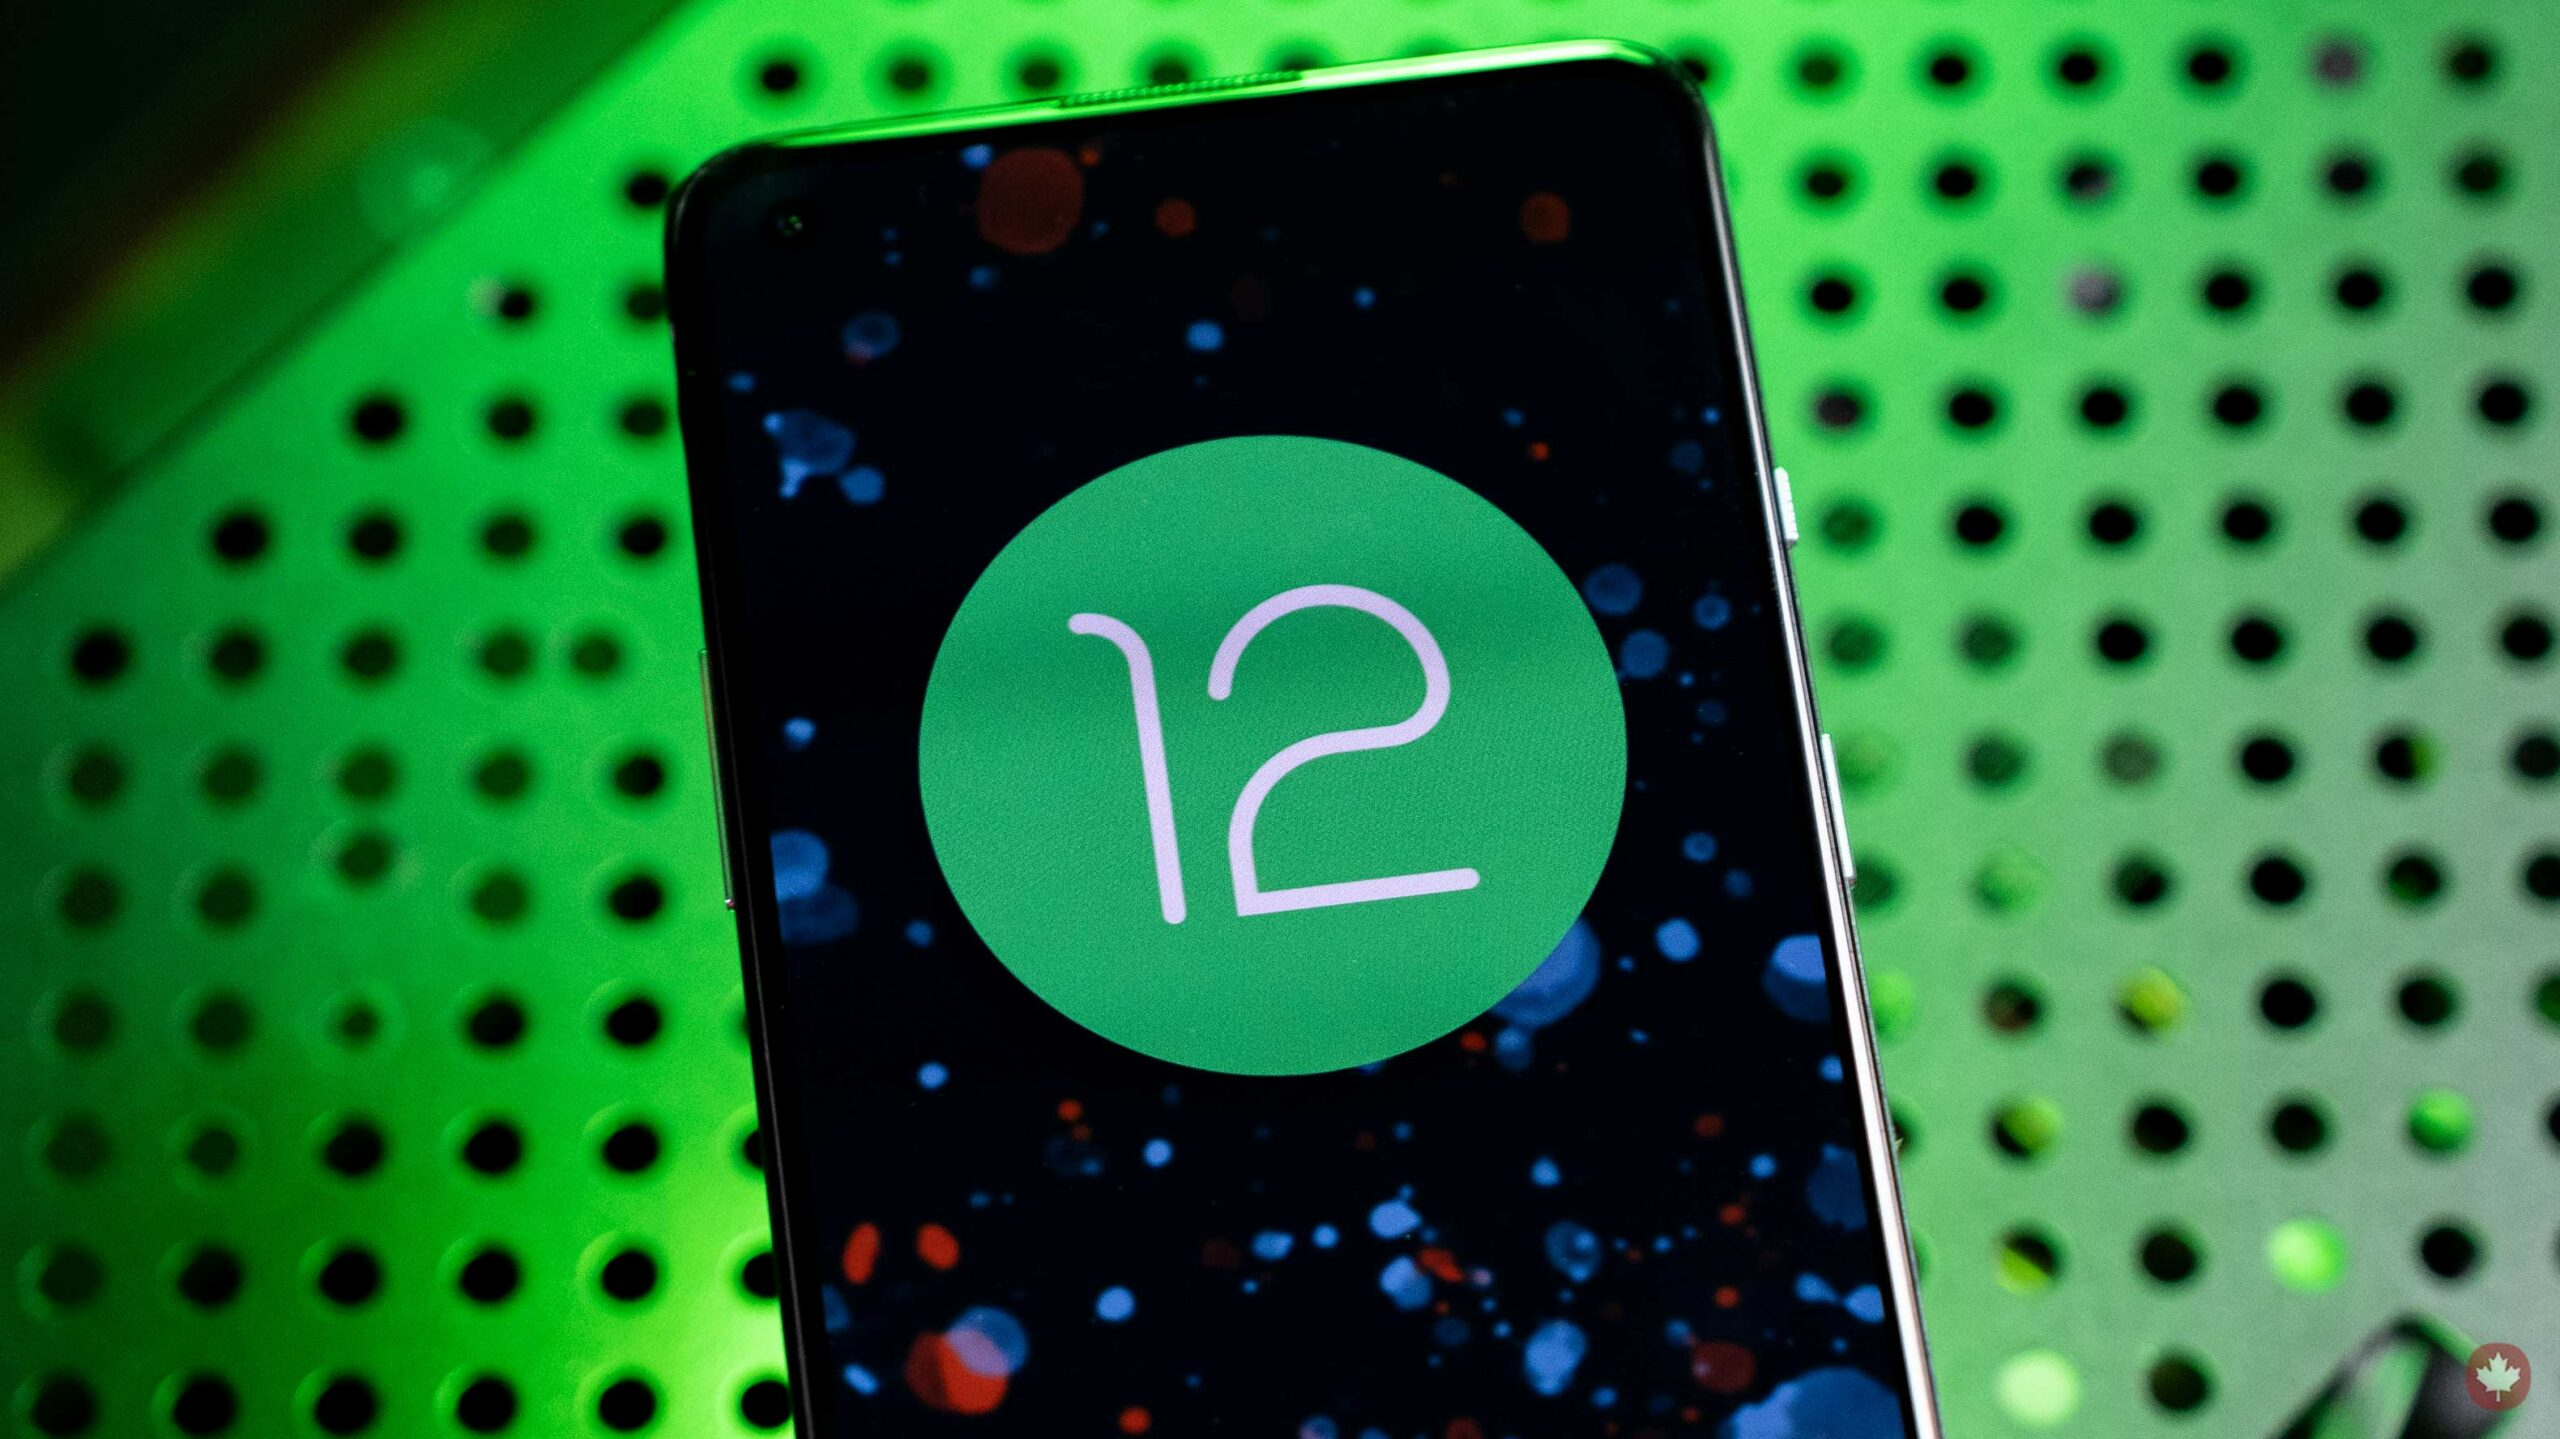 Android 12 Beta 2.1